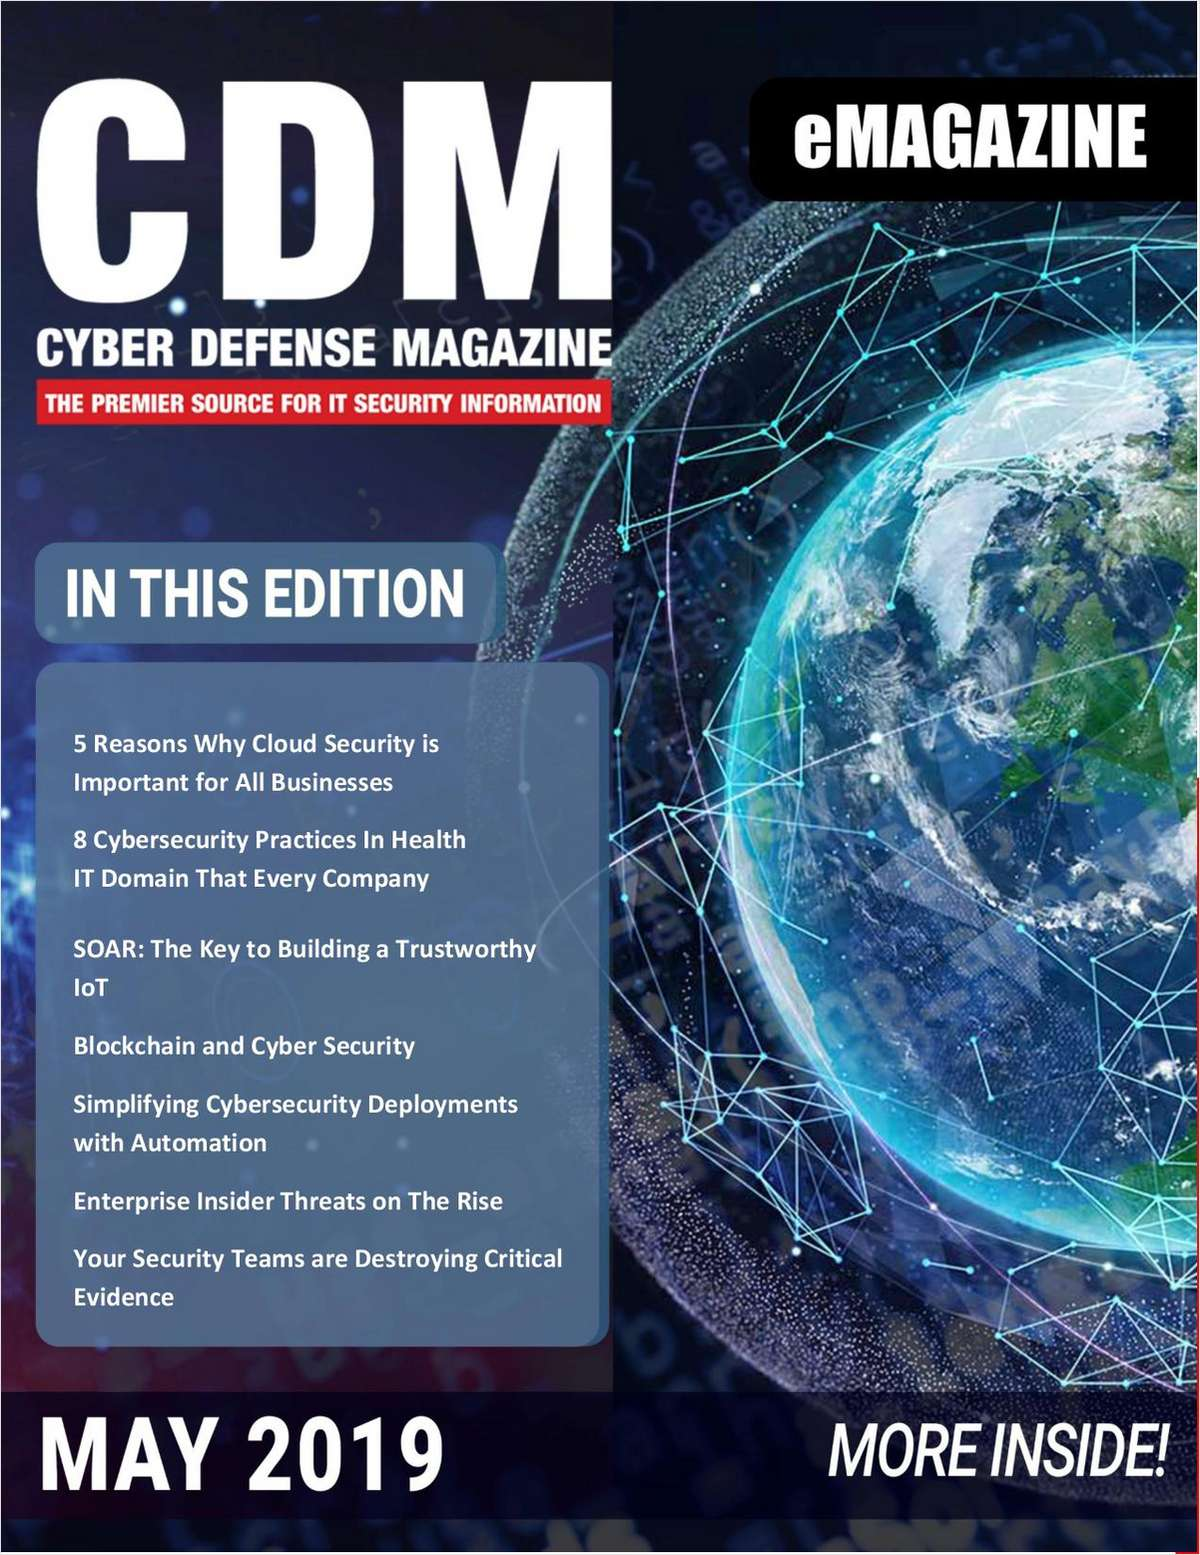 Cyber Defense eMagazine - May 2019 Edition